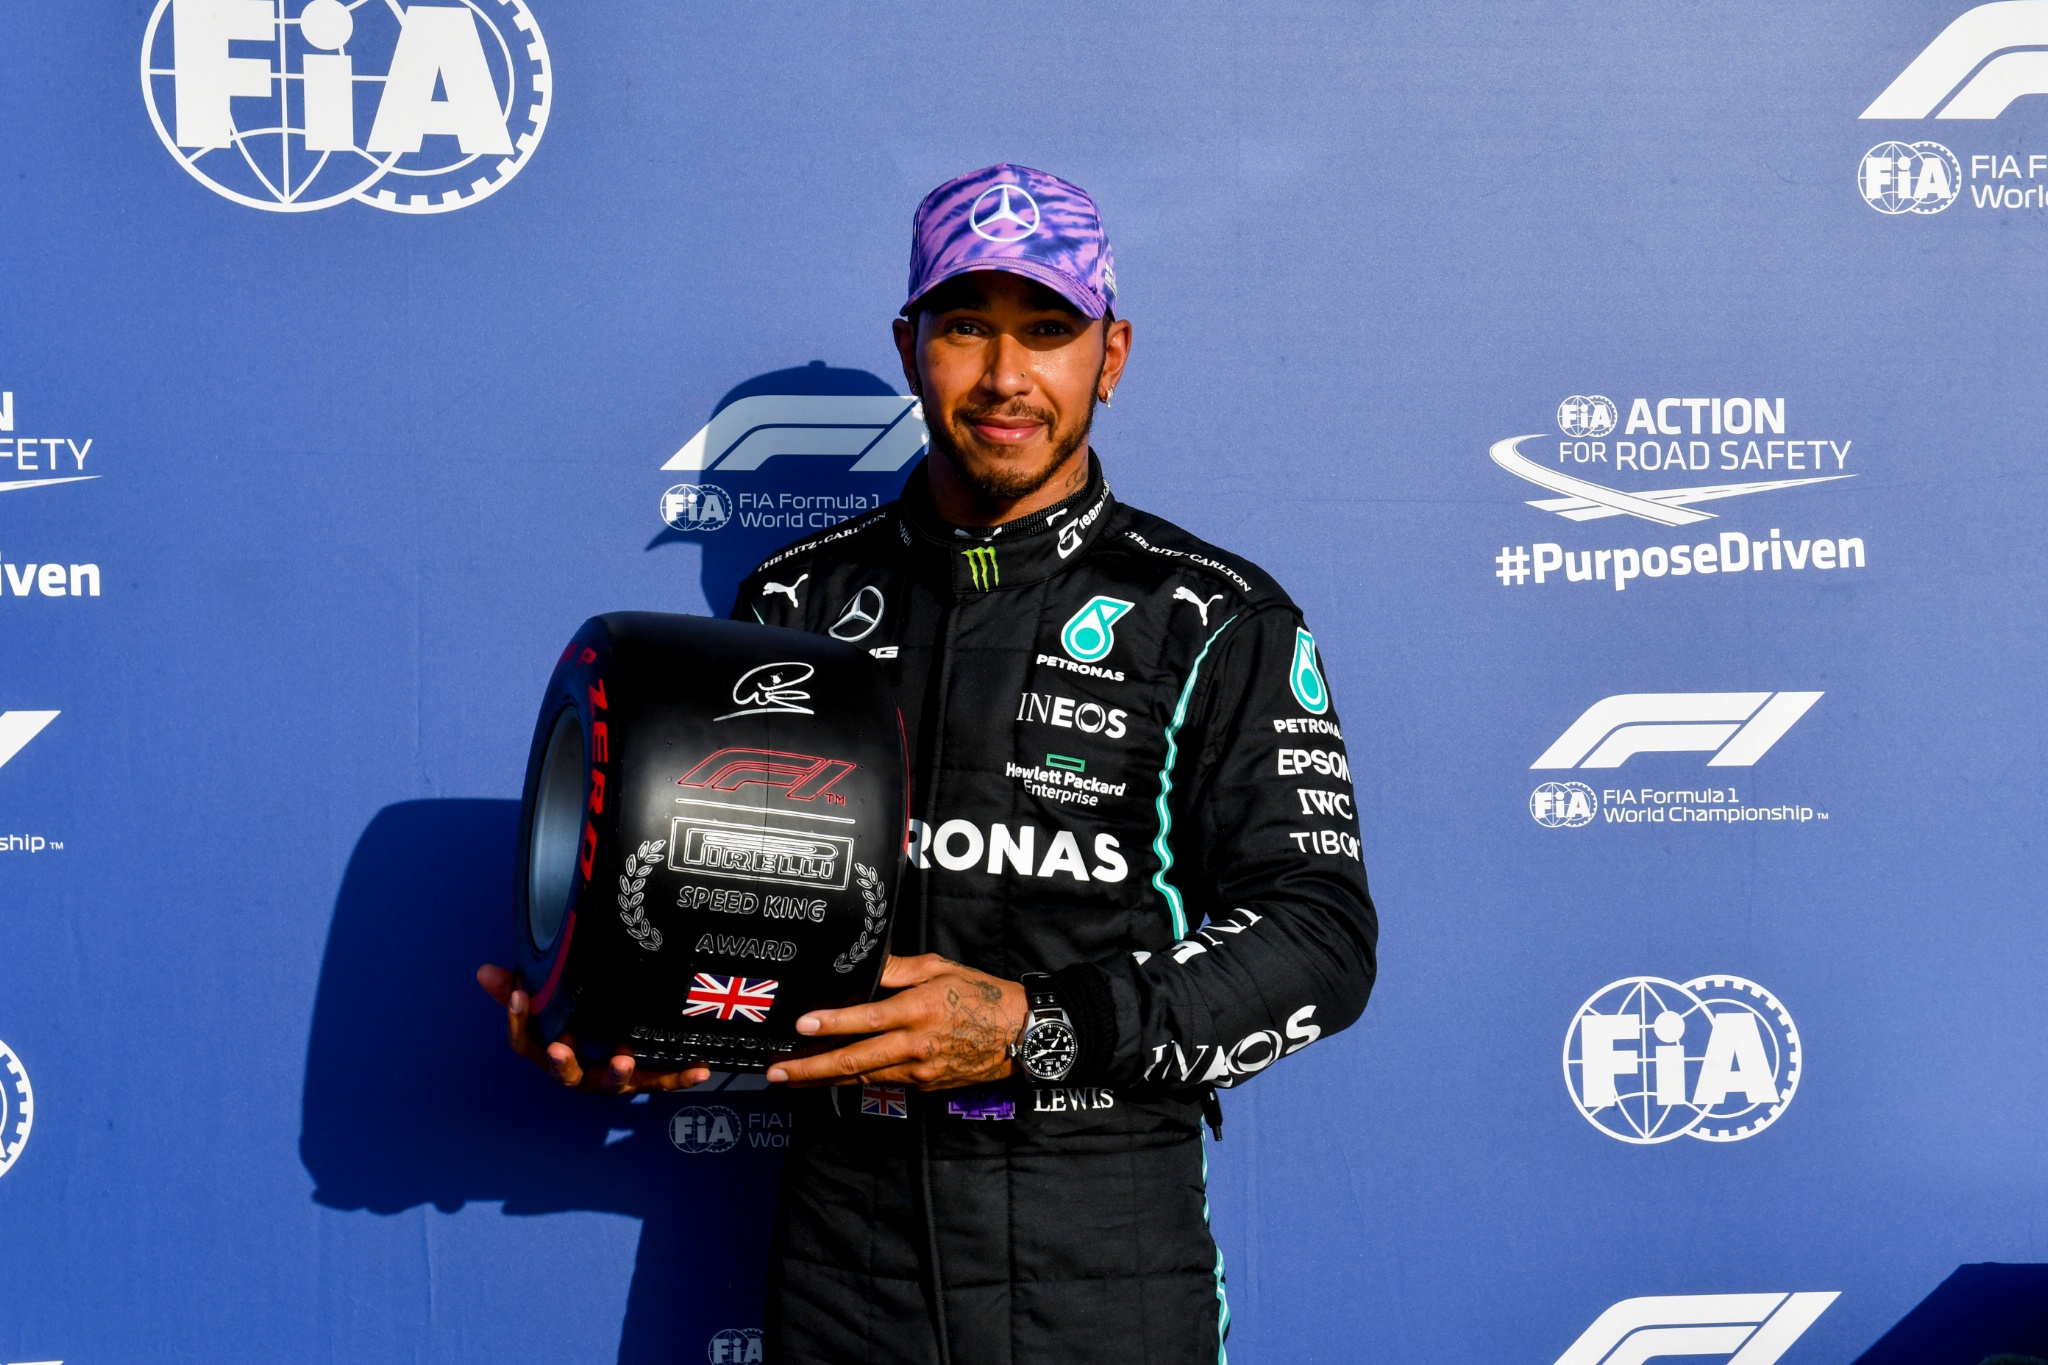 Lewis Hamilton (GBR) Mercedes AMG F1 with the Pirelli Speed King Award for being fastest in qualifying.